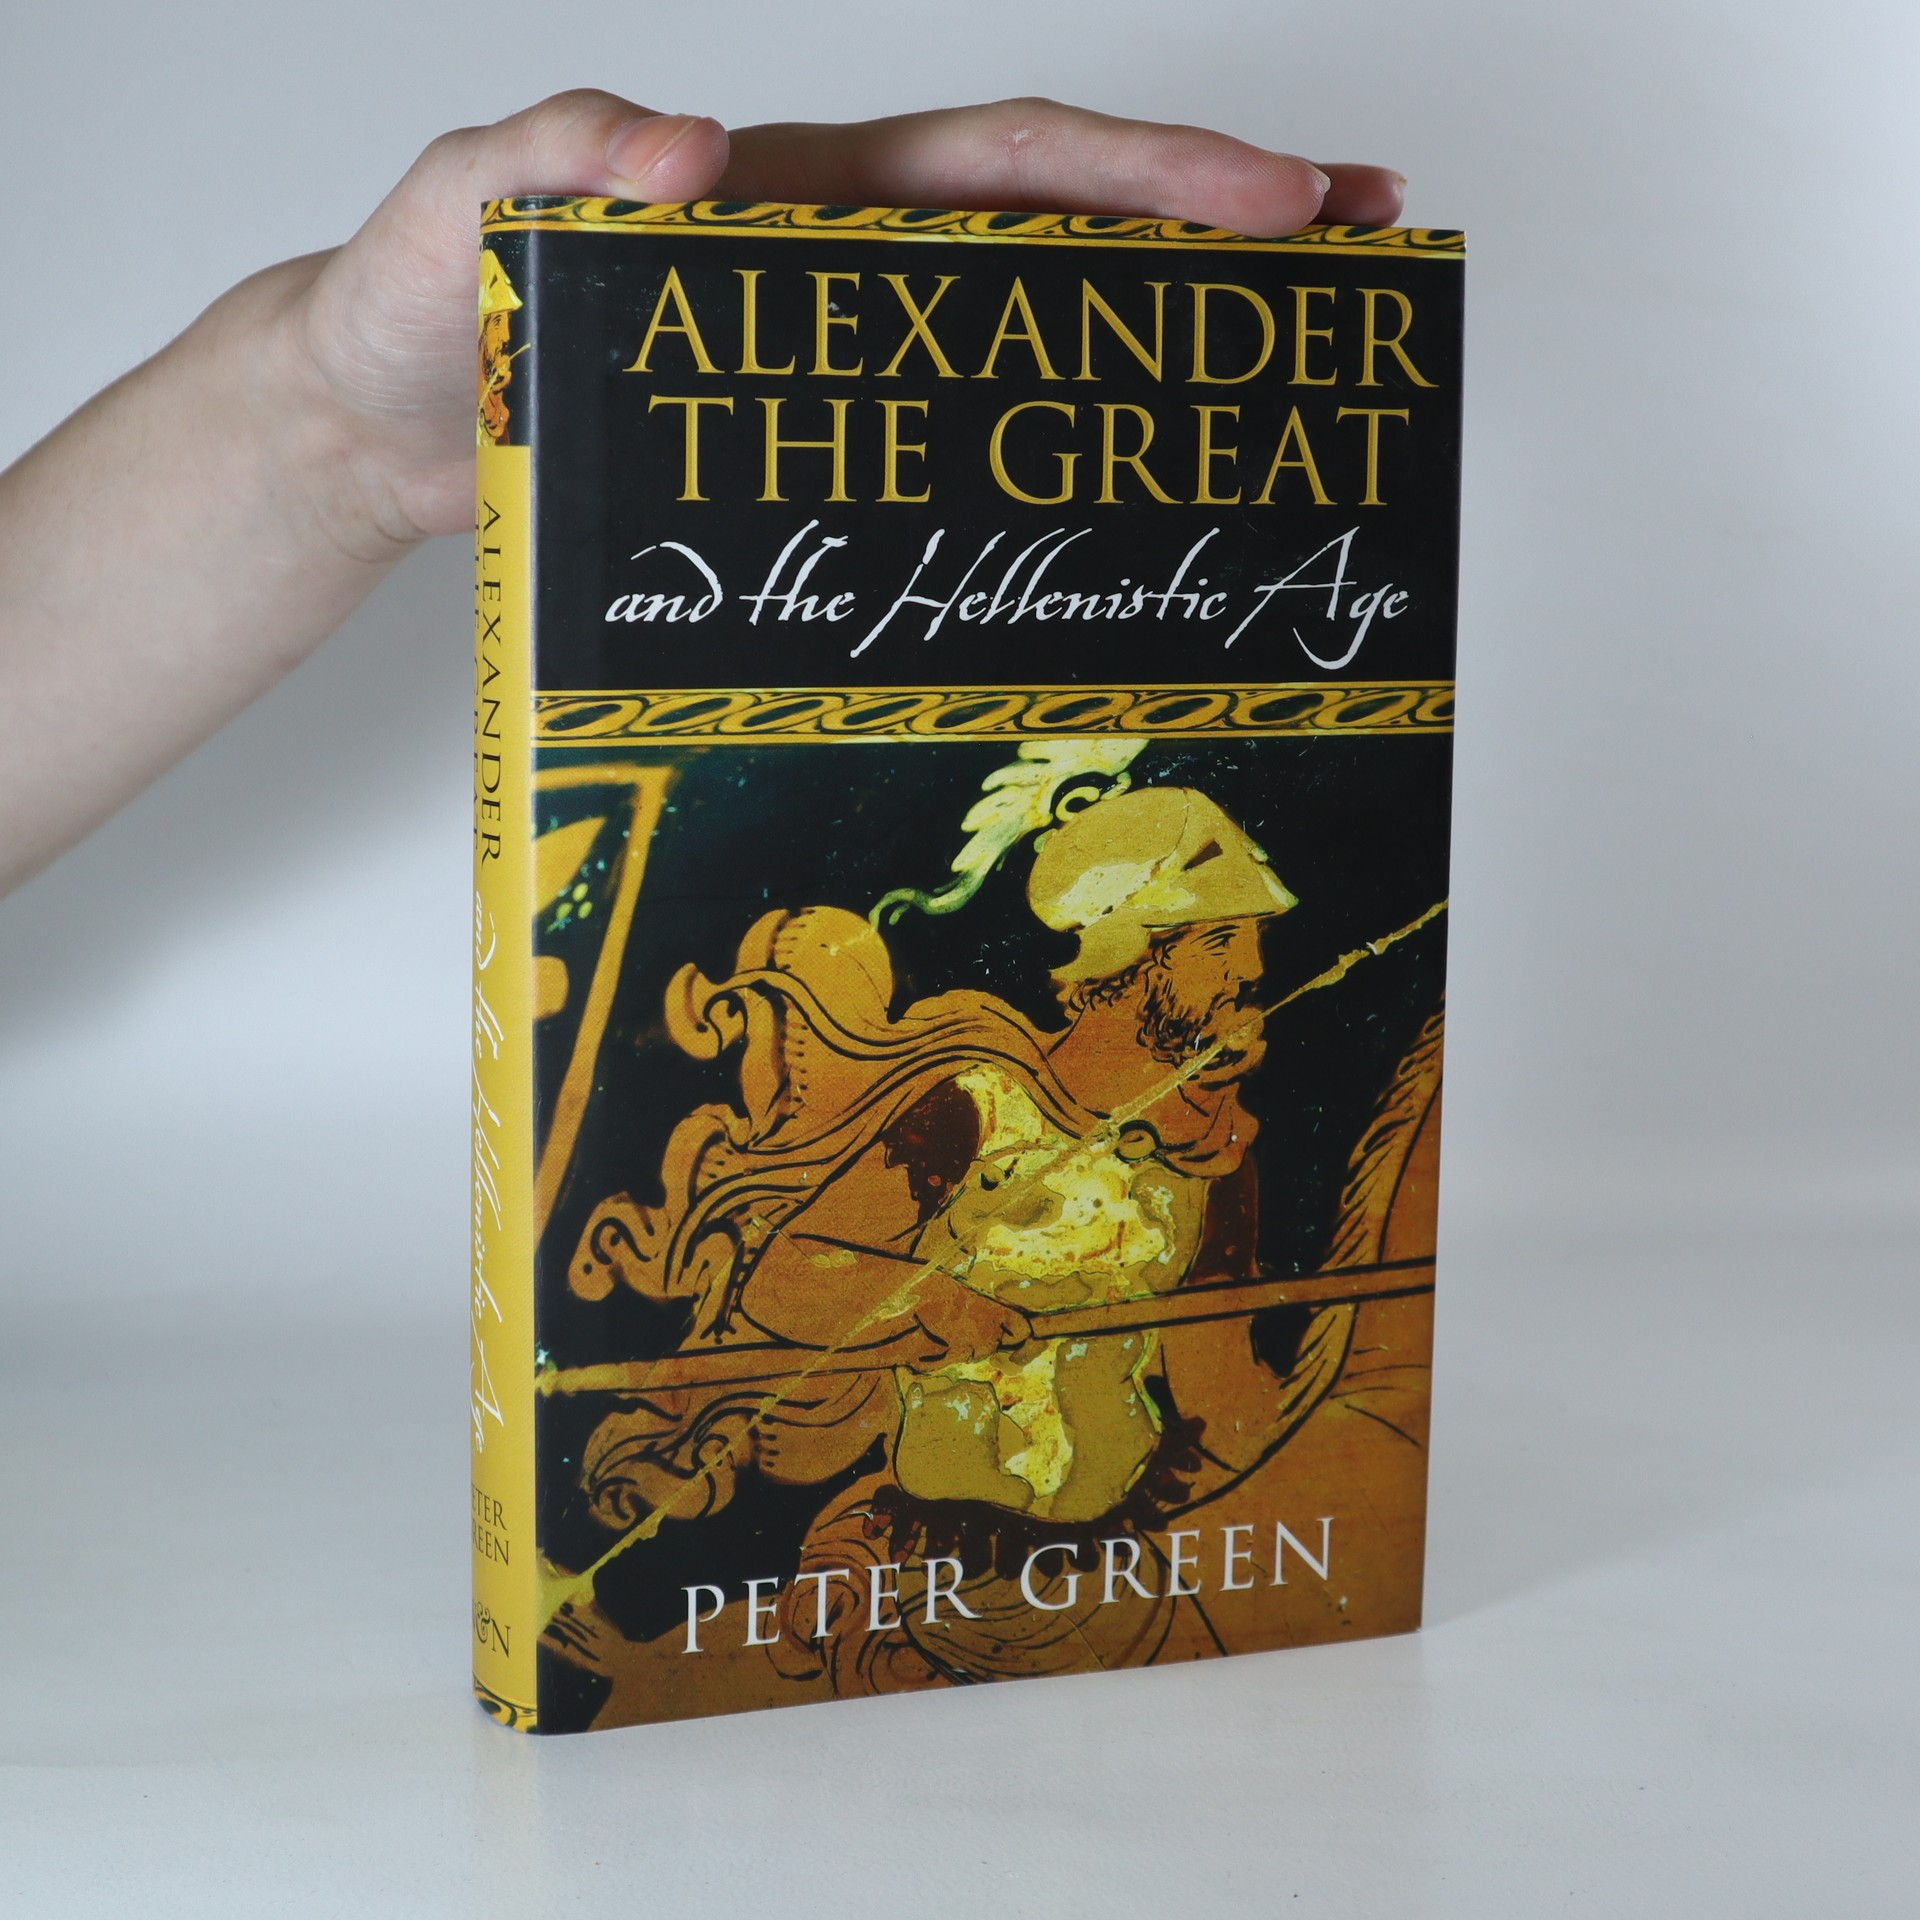 antikvární kniha Alexander the Great and the Hellenistic age, 2007